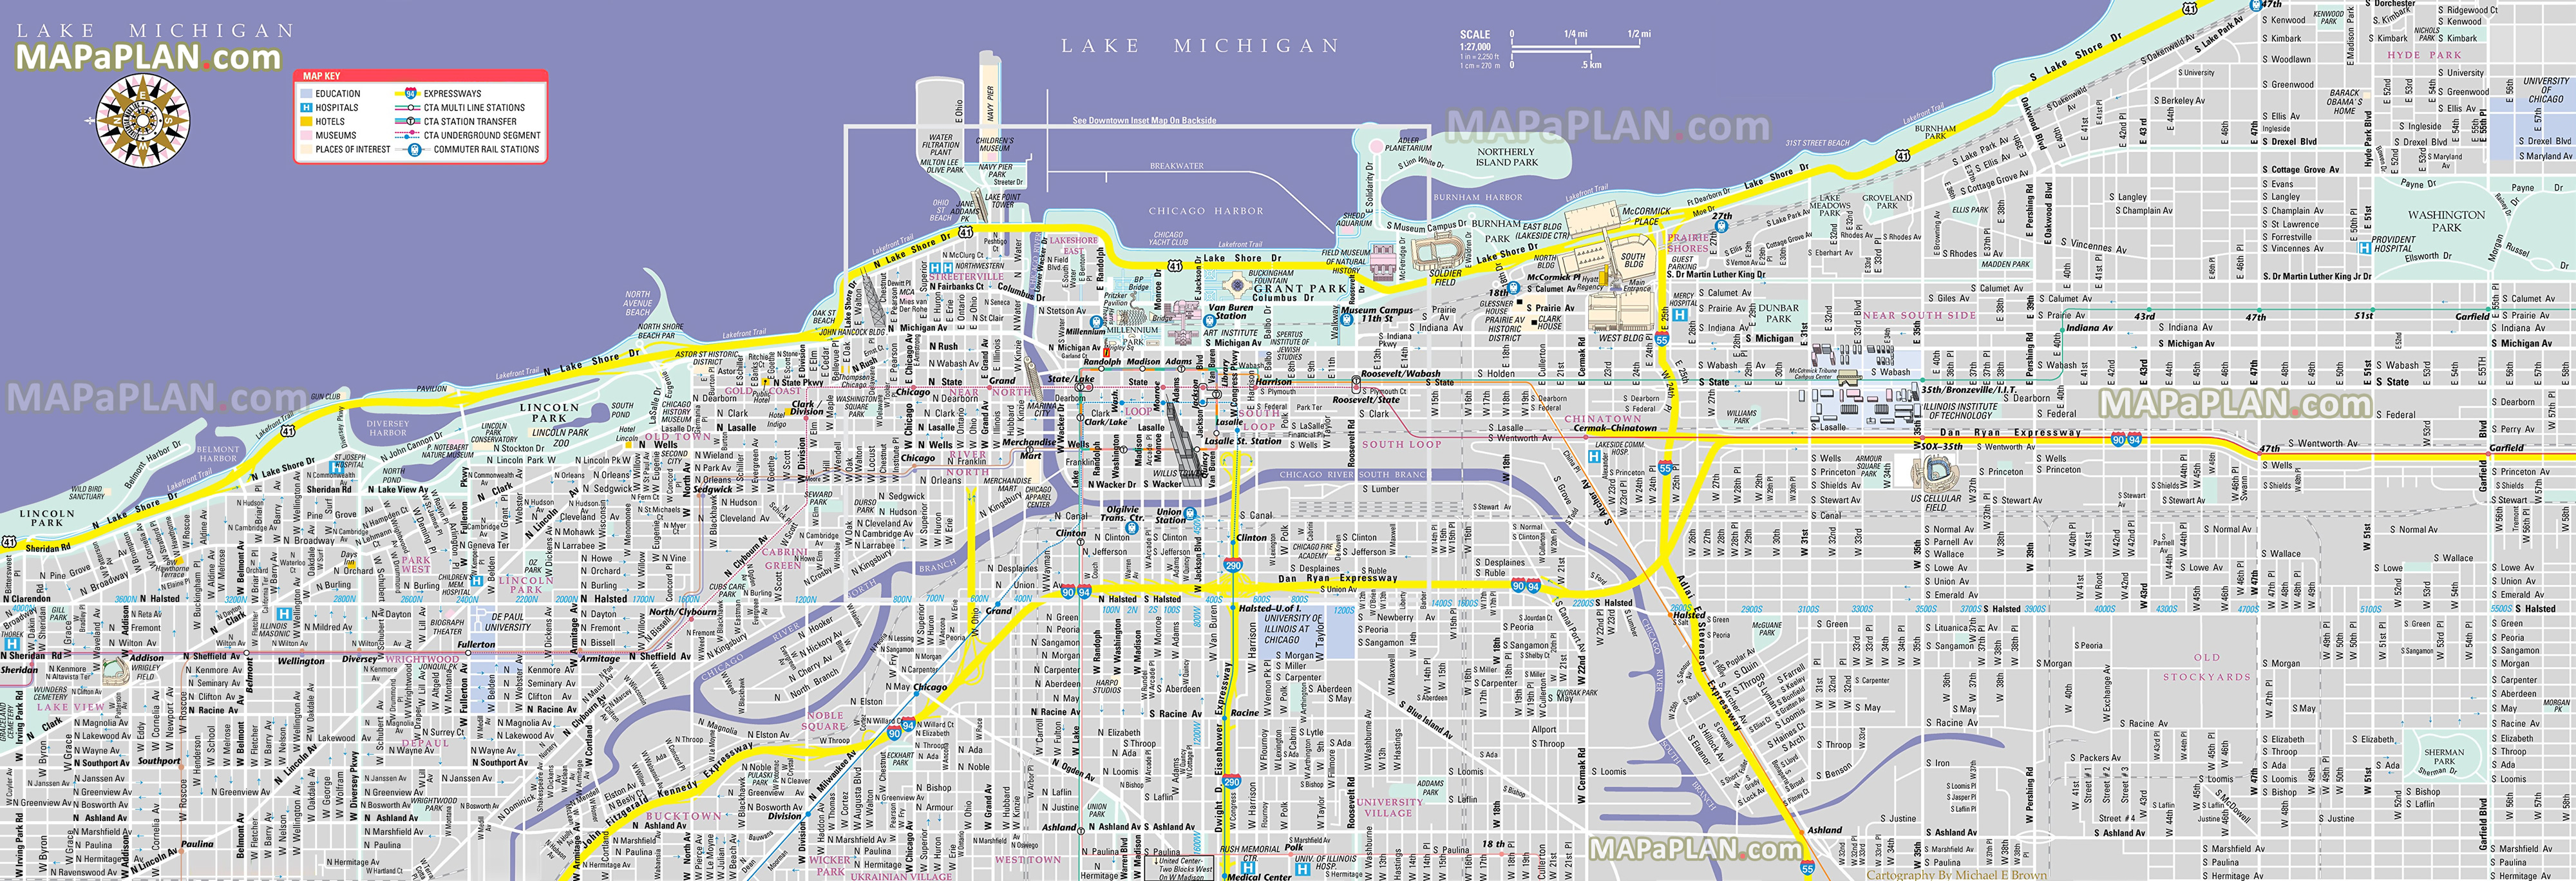 Chicago Maps - Top Tourist Attractions - Free, Printable City Street Map - Printable Map Of Downtown Boston